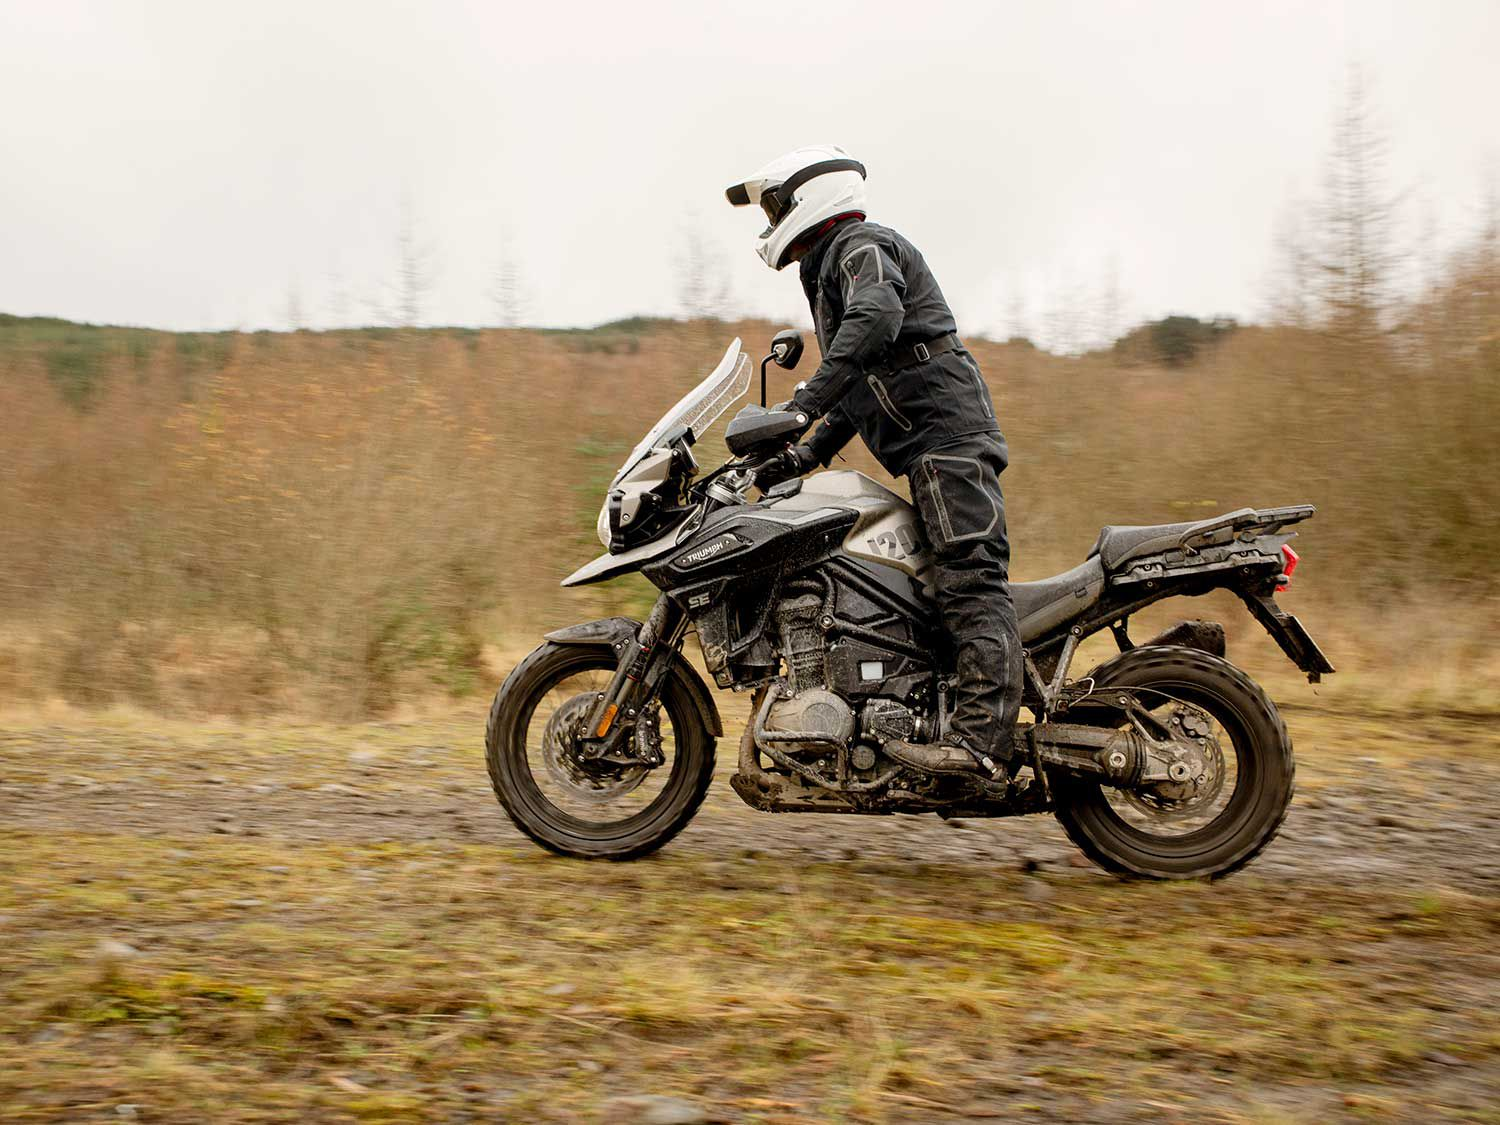 The Off-Road Pro riding mode is perfect for the 2020 Triumph 1200 Desert Edition because its off-road setting are tailored toward the needs of advanced off-road adventure, with ABS and traction control turned off, and an off-road throttle map.